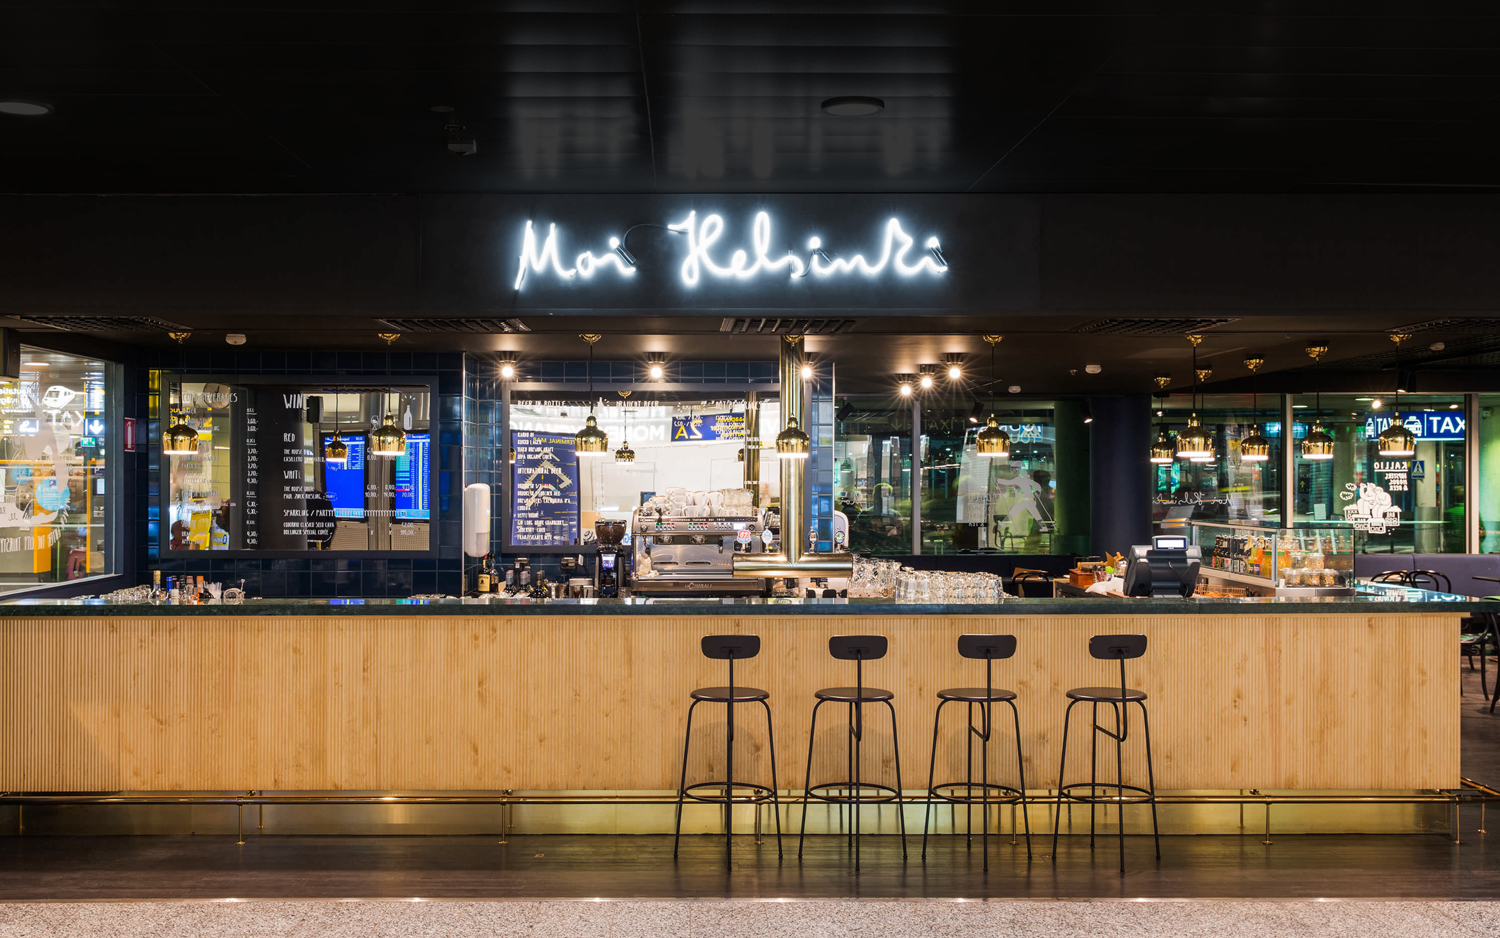 Lettering and neon signage for Moi Helsinki by Bond, Finland